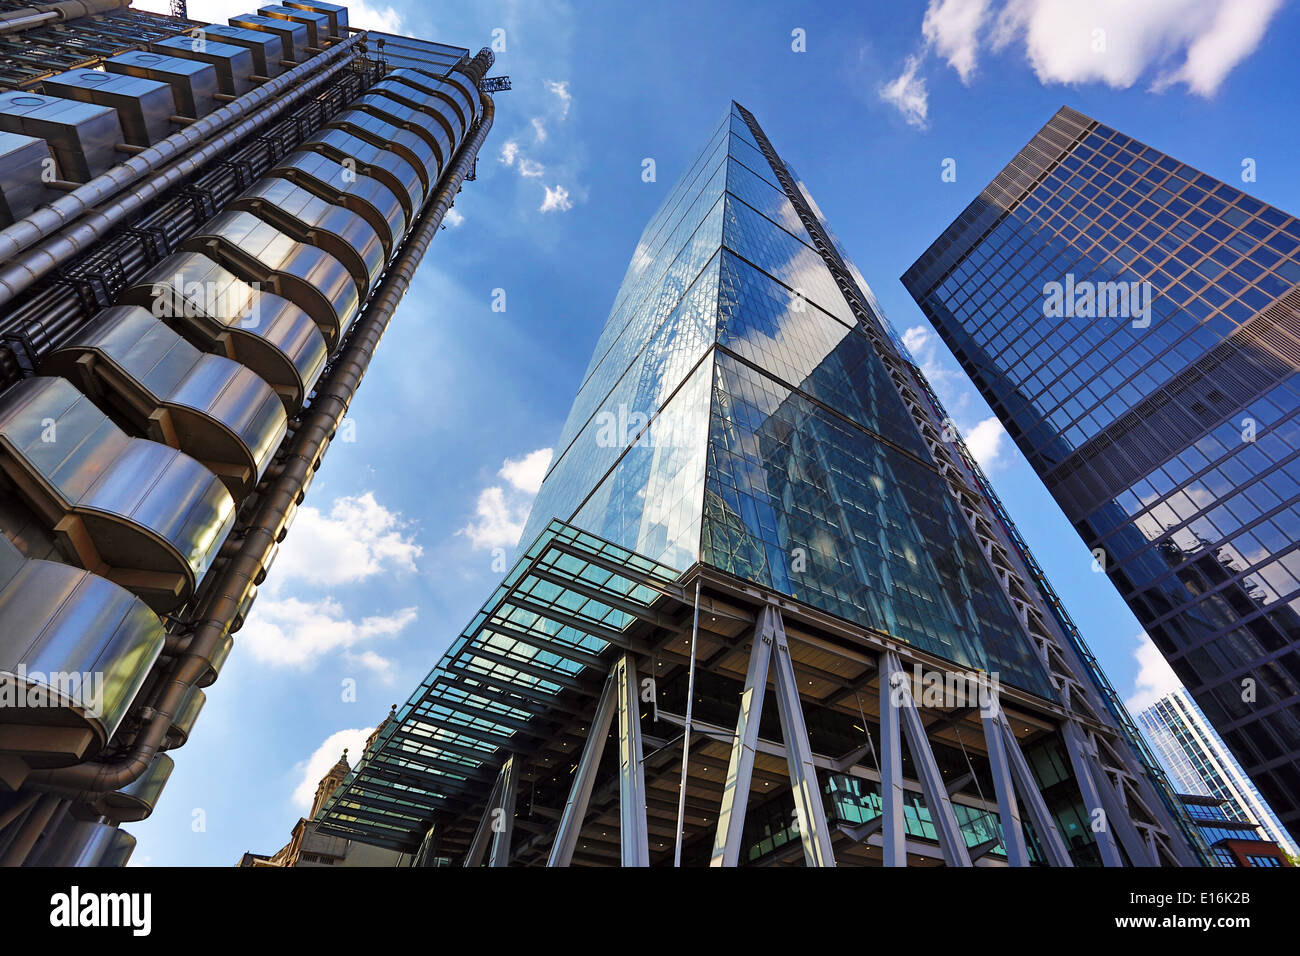 Lloyd's of London and the Leadenhall Building aka the Cheesegrater, London, England - Stock Image